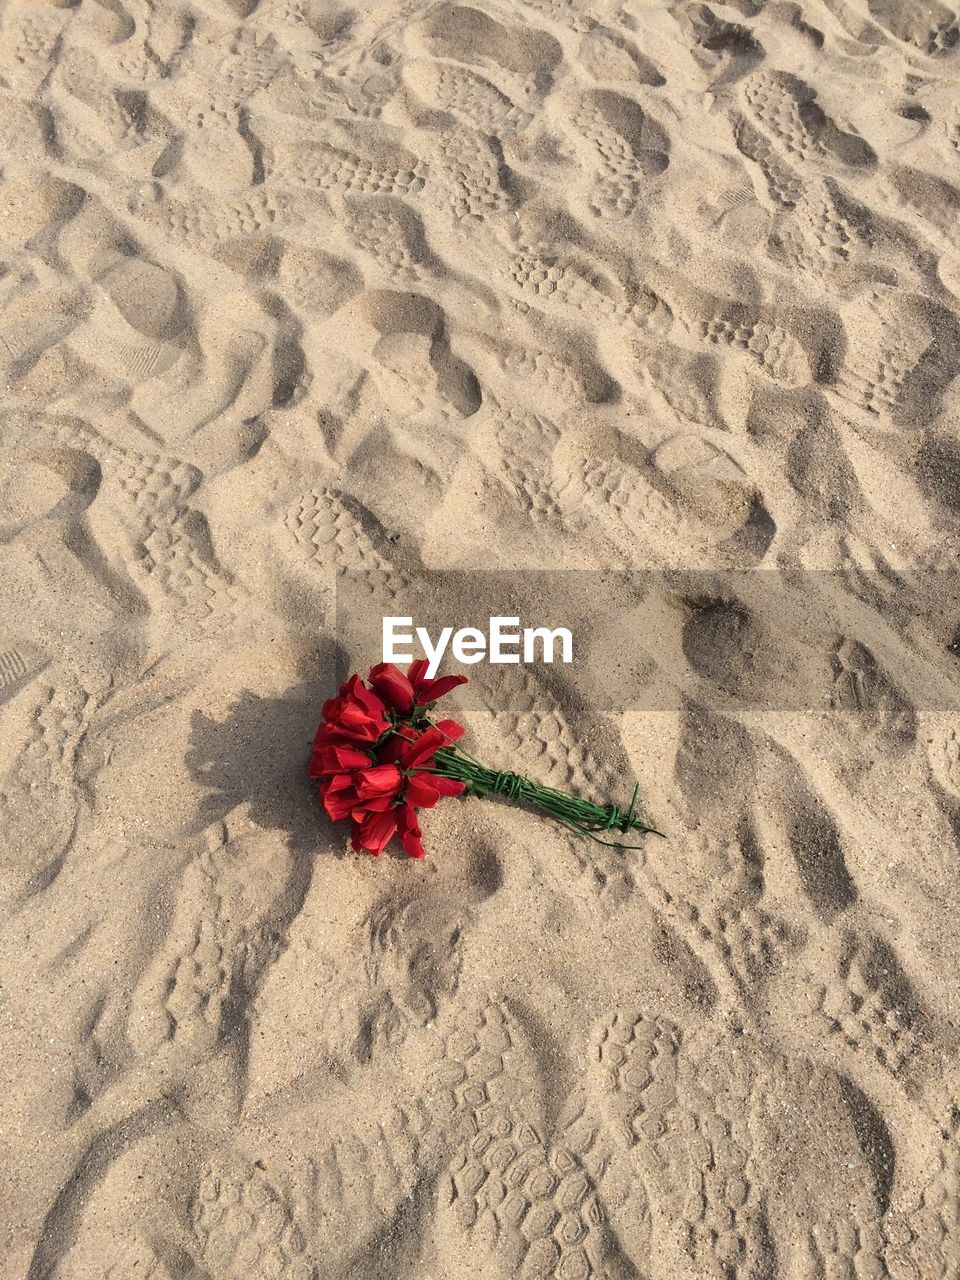 HIGH ANGLE VIEW OF RED FLOWER ON SAND AT BEACH